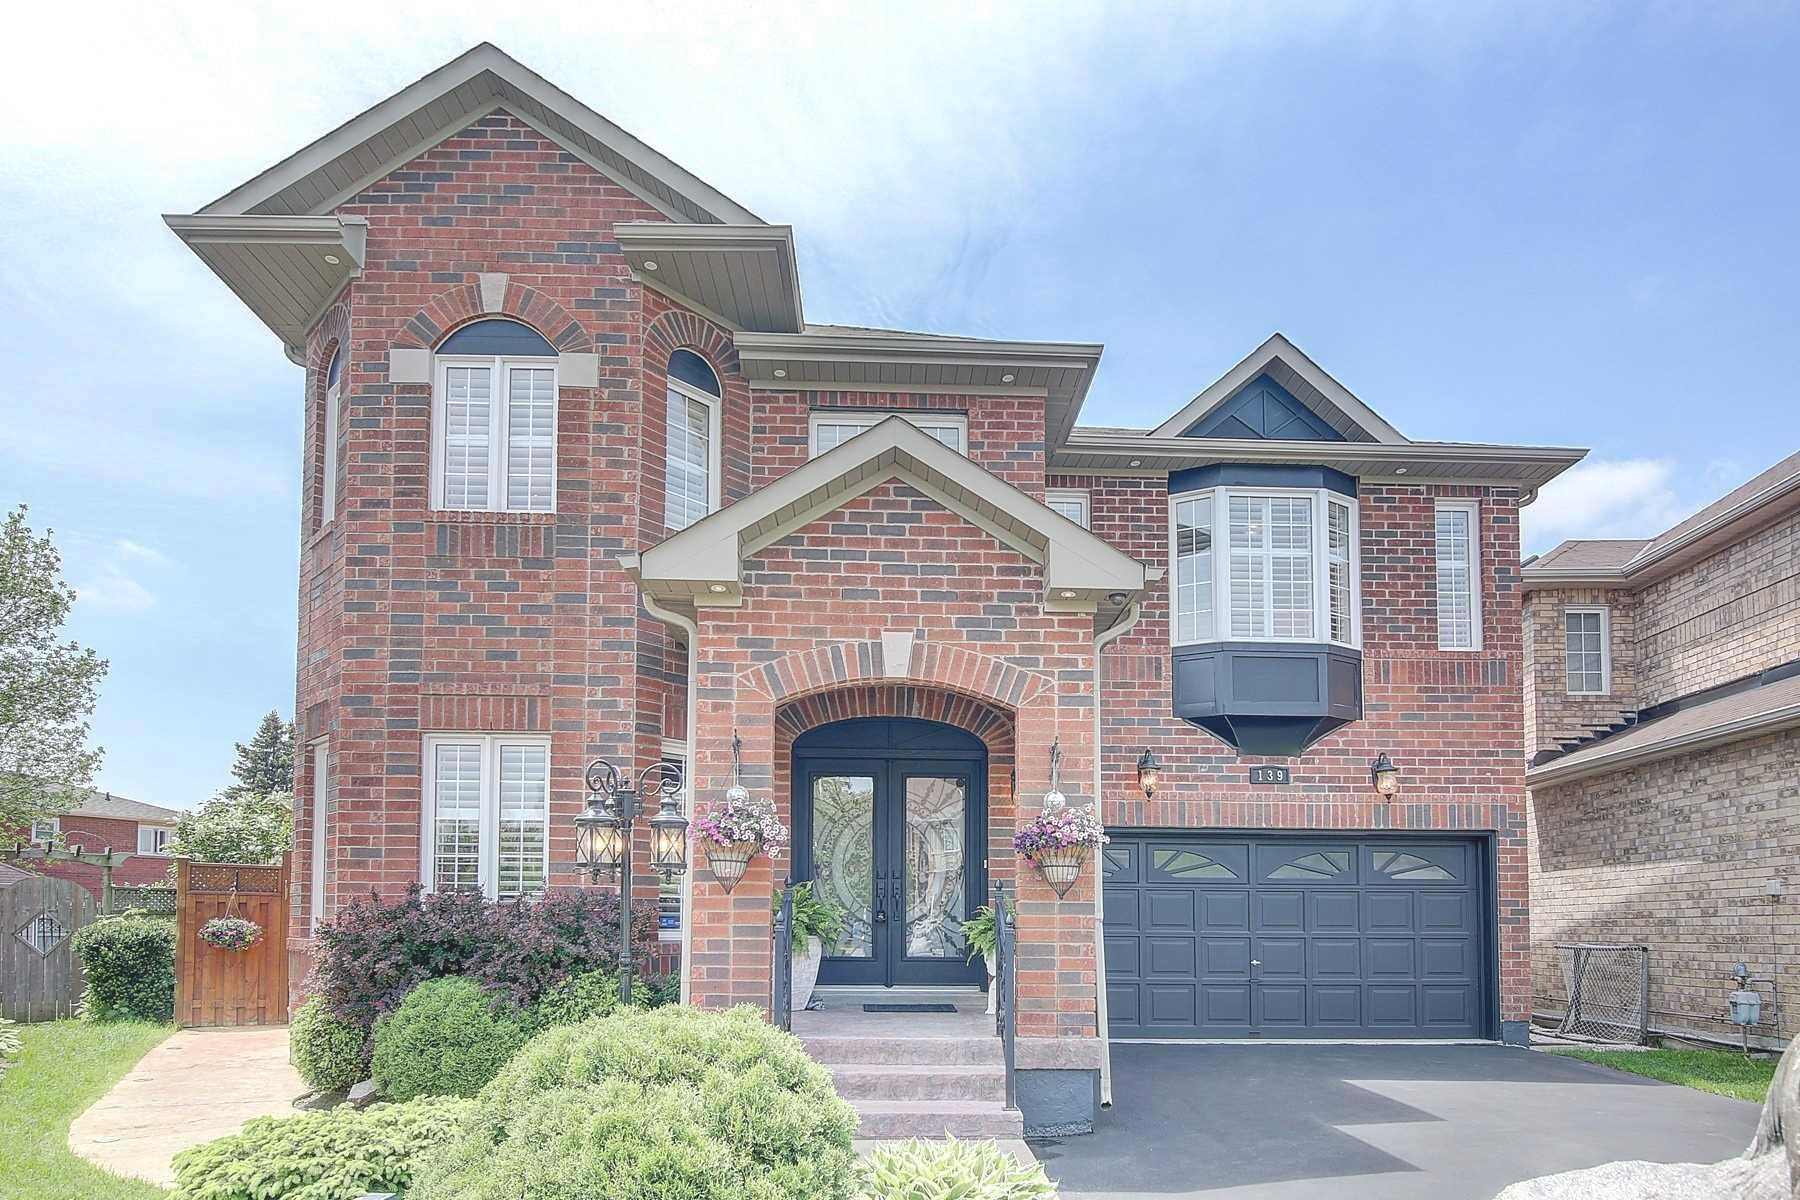 Main Photo: 139 Penndutch Circle in Whitchurch-Stouffville: Stouffville House (2-Storey) for sale : MLS®# N4779733